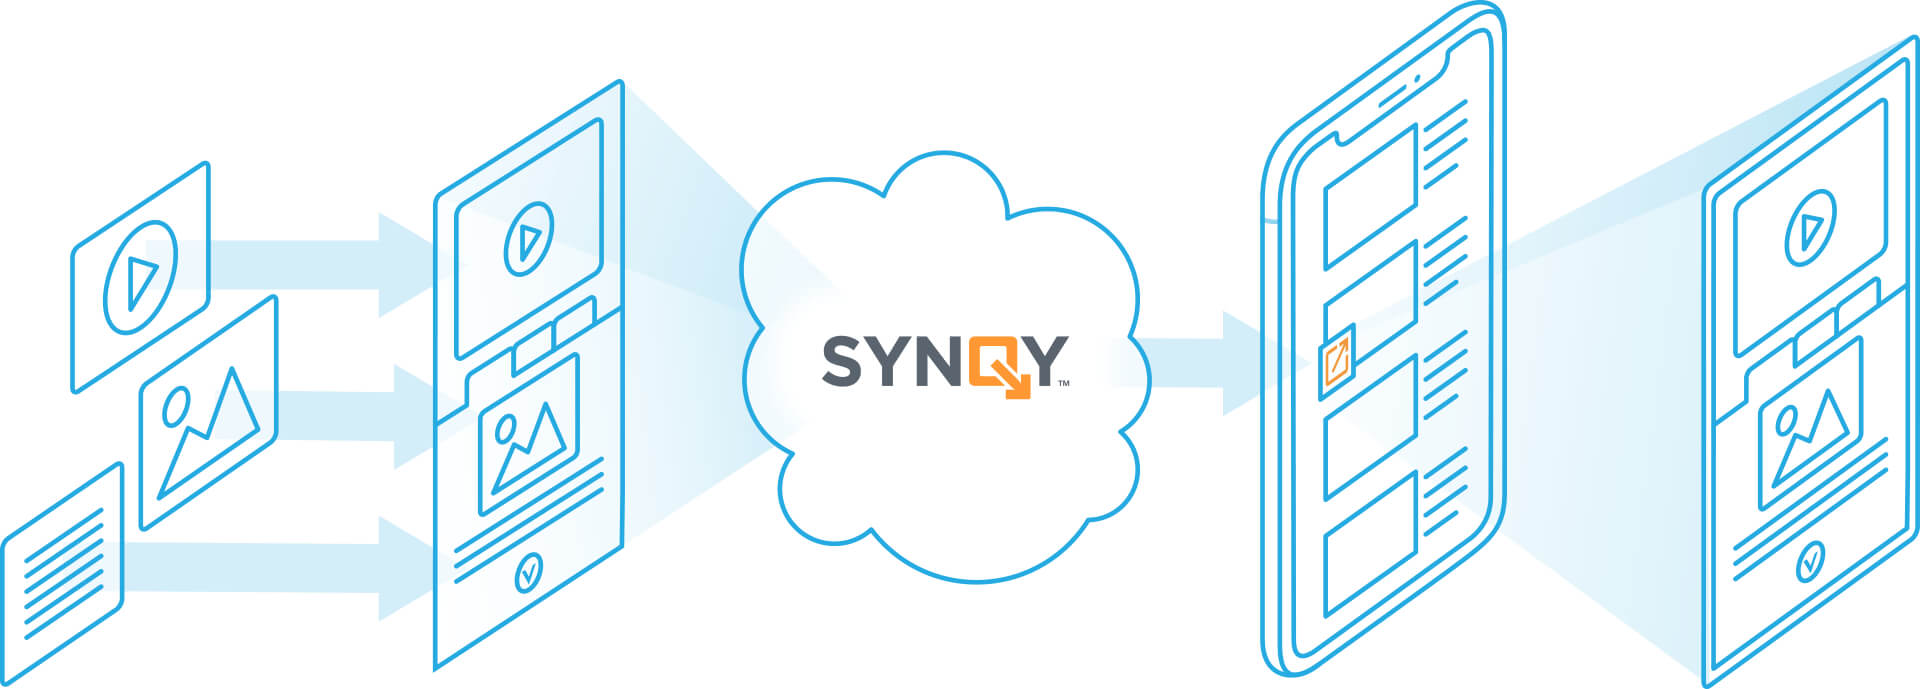 SYNQY's new retail media solution is named as SYNQY Persuasion Engine. Check how SYNQY's new Persuasion Engine works.